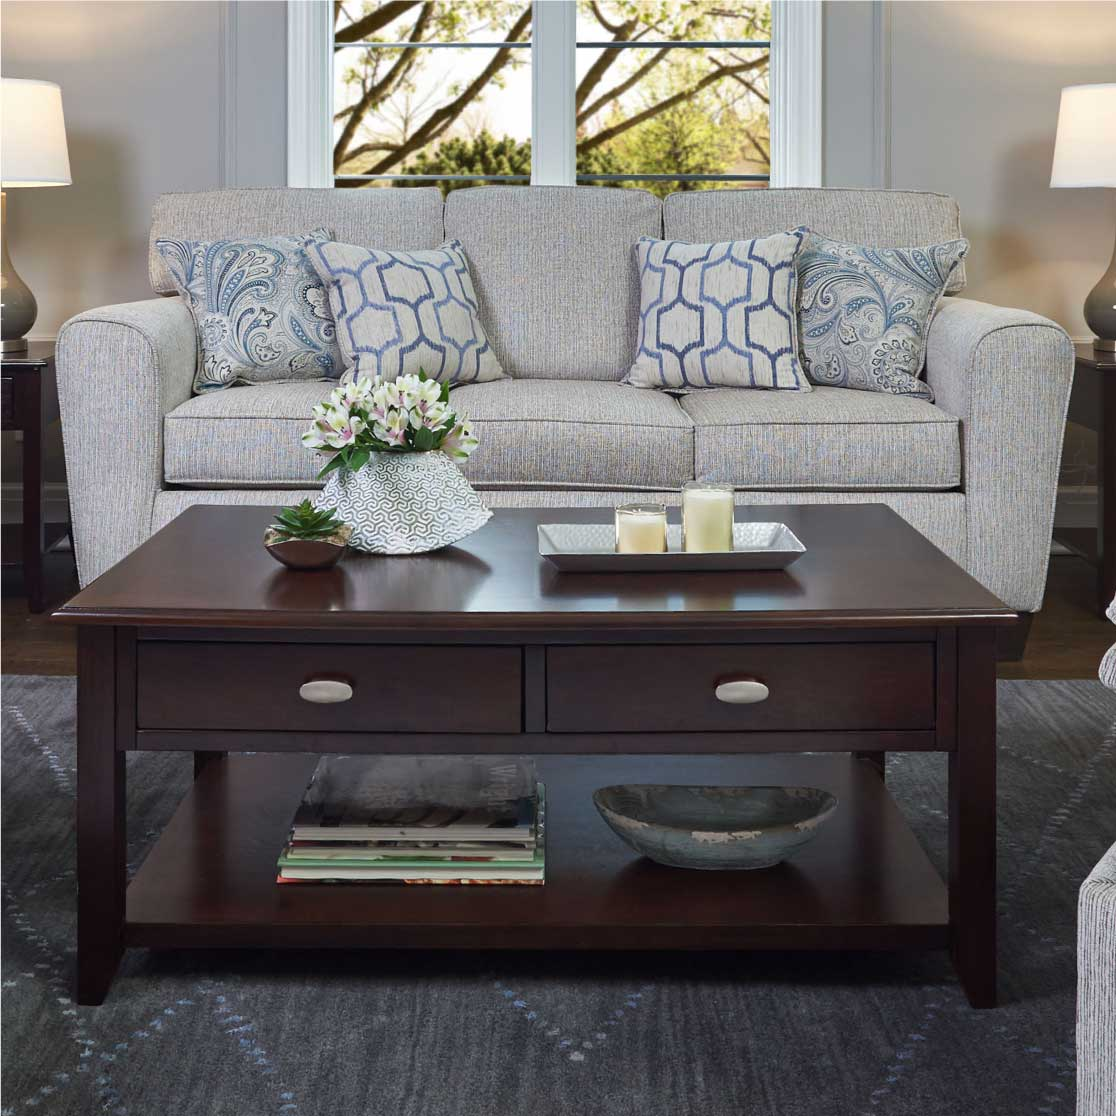 Contemporary living room sofa in beige with soft blue accent pillows